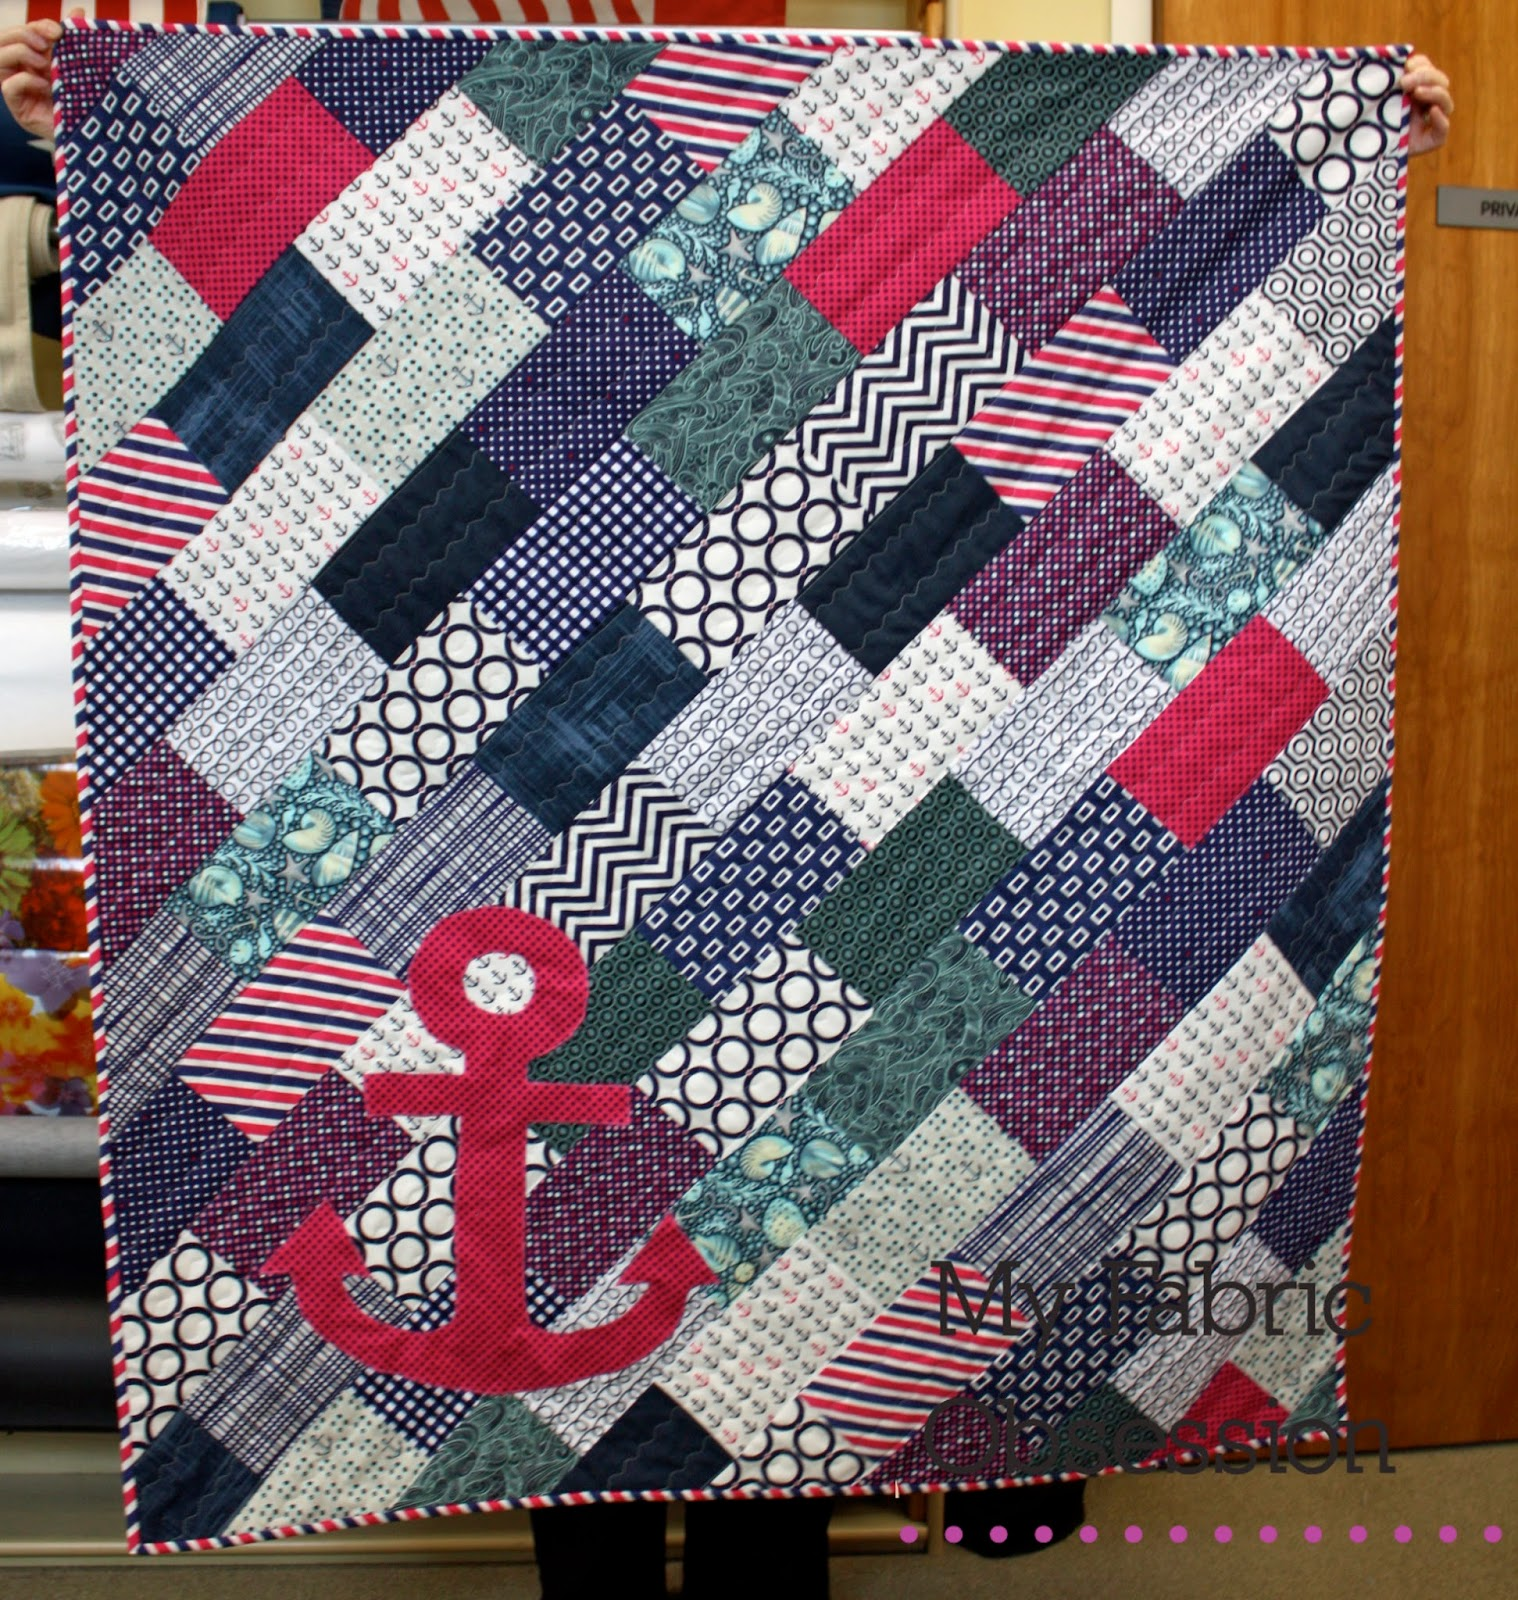 http://myfabricobsession.blogspot.com/2014/03/pink-and-navy-nautical.html